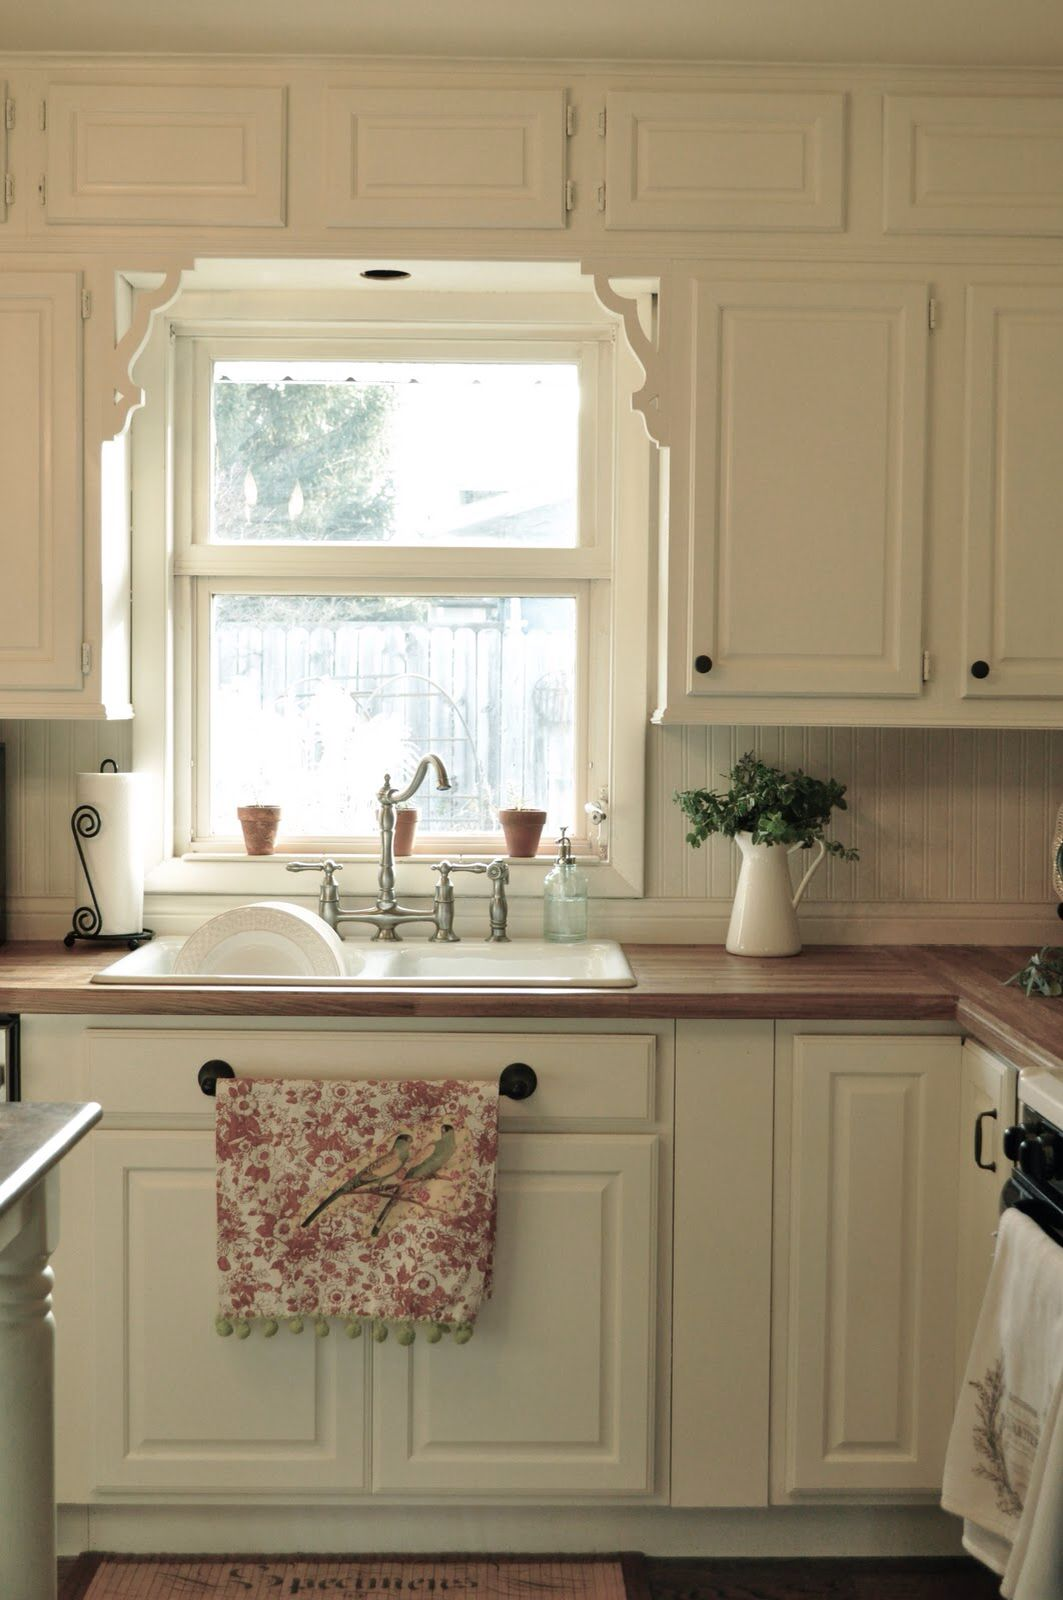 Just In Case We Want To Reuse Some Of The Top Cabinets And Just Add Above Could Be Open Or Complete Kitchen Remodel Kitchen Remodel Farmhouse Kitchen Design